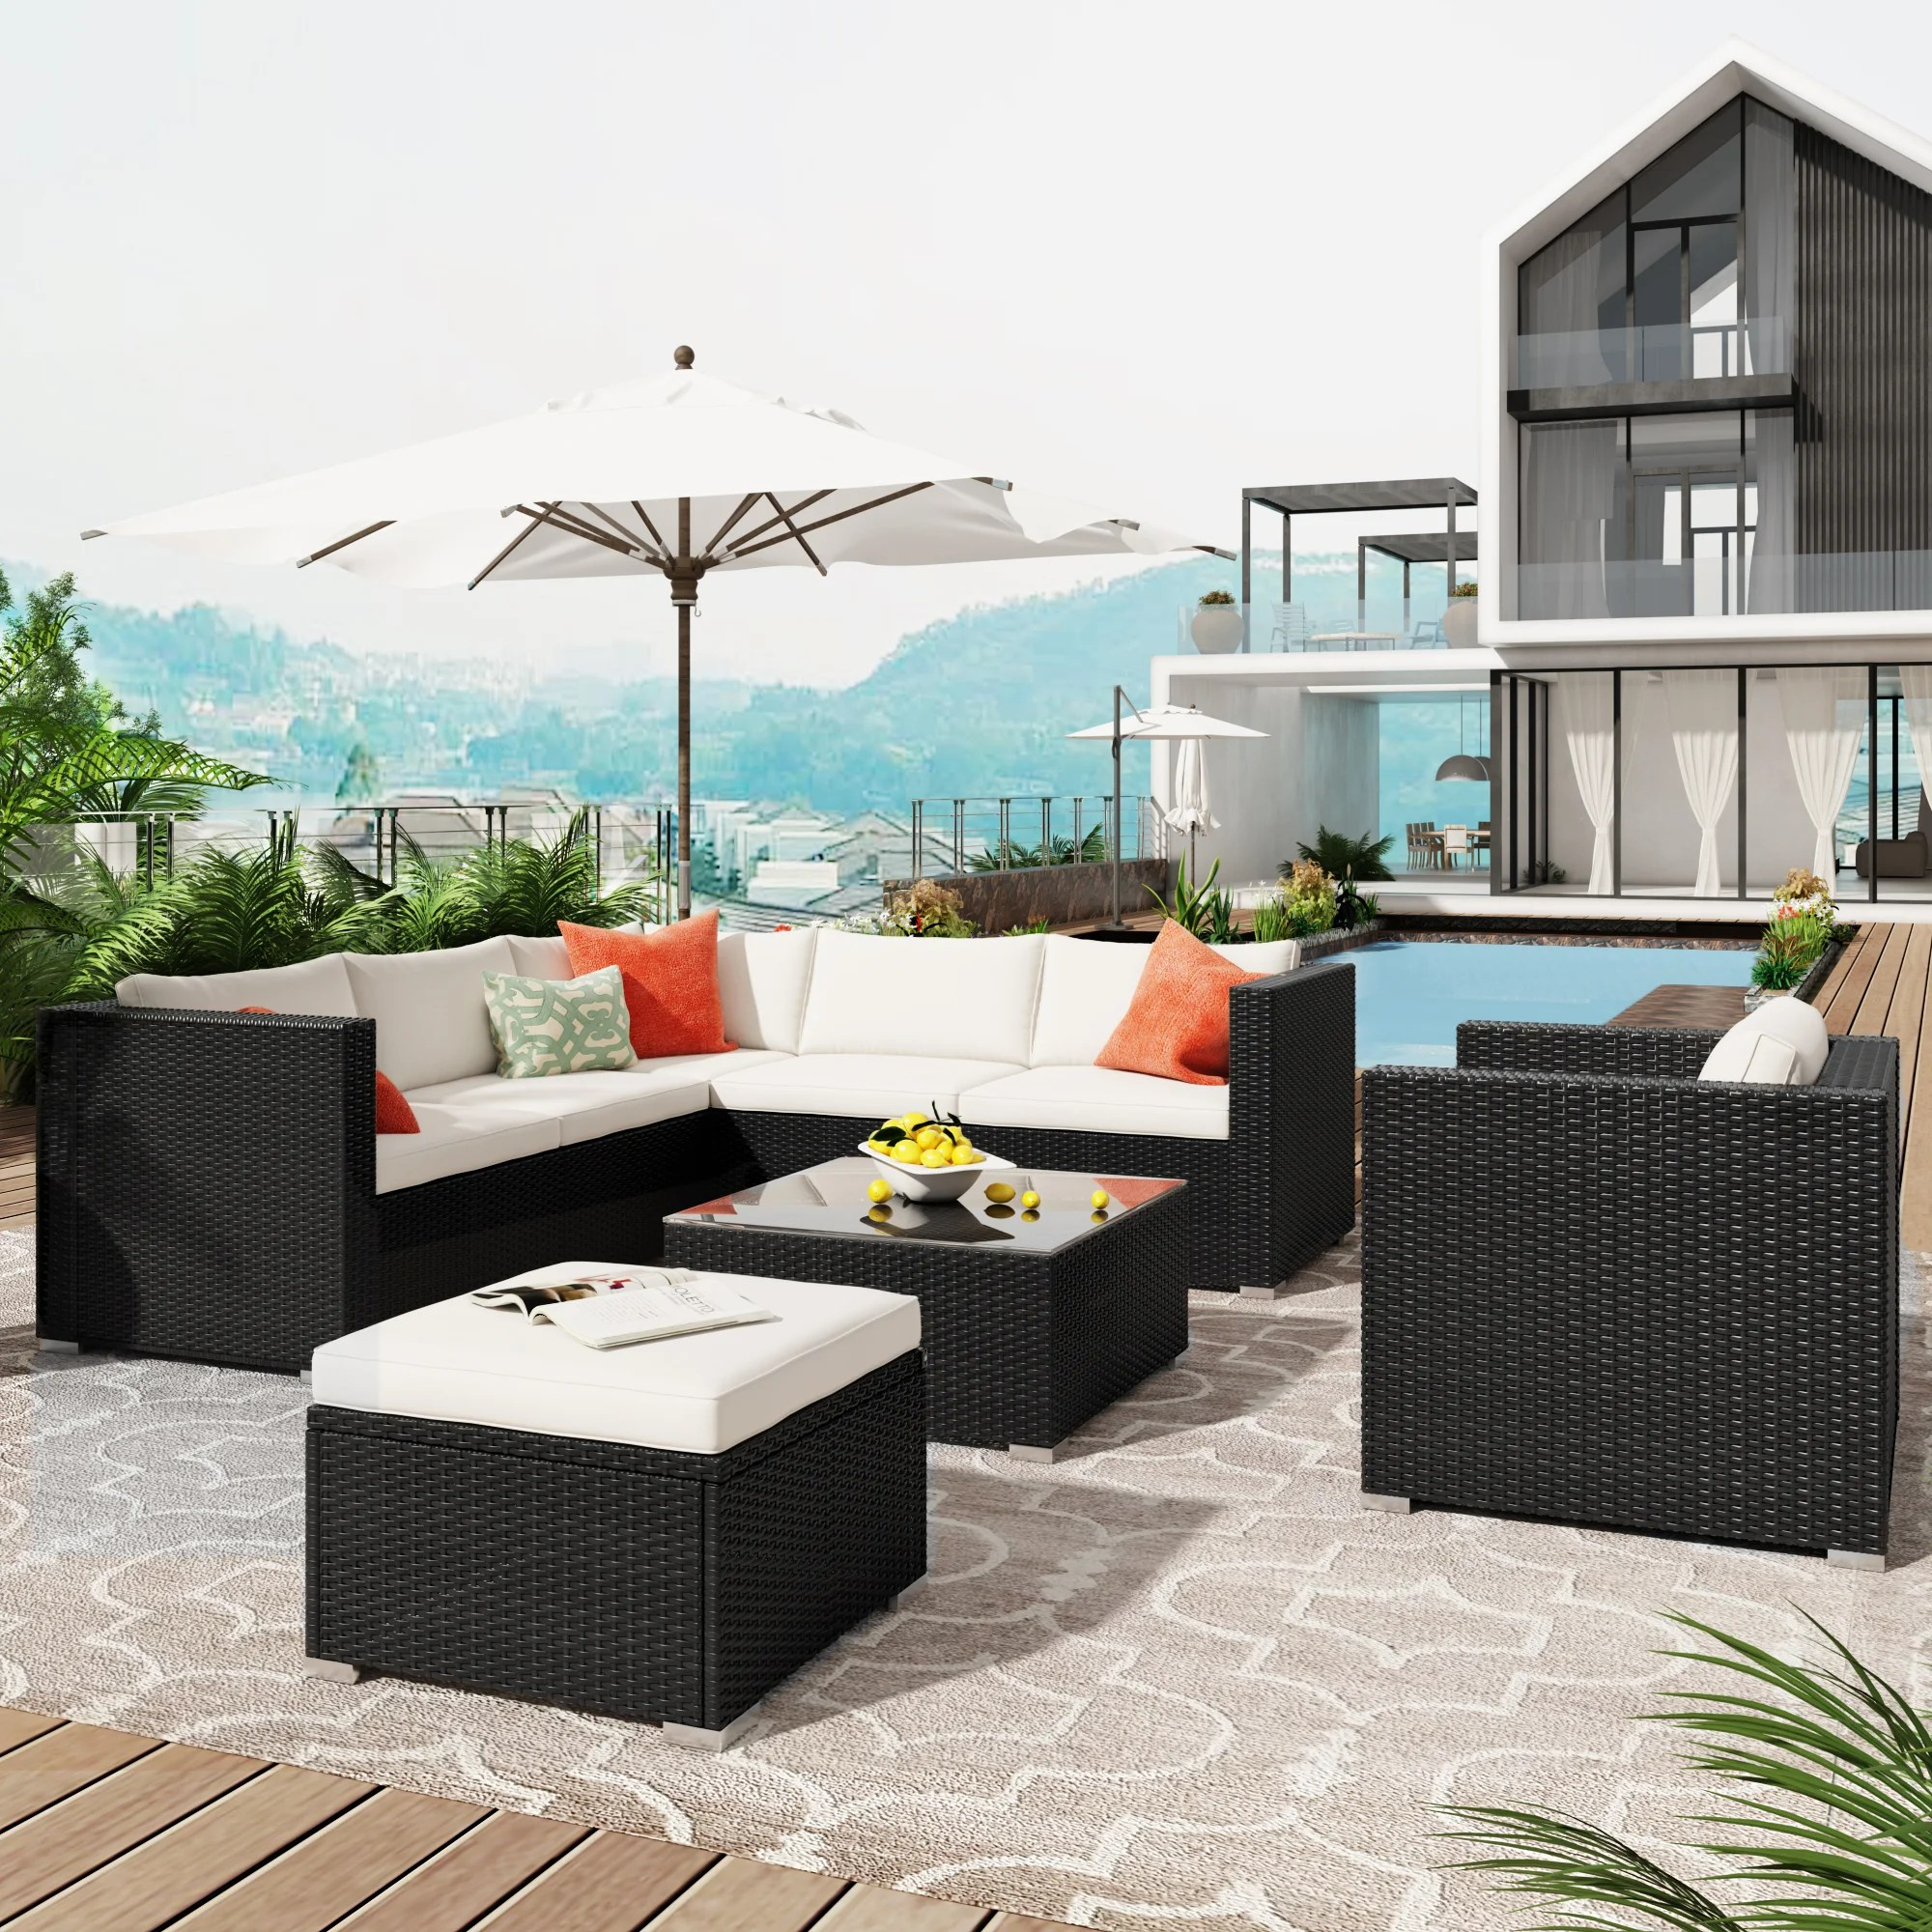 u style patio furniture sets all weather outdoor pe rattan sectional sofa 8 piece patio wicker corner sofa with cushions ottoman and coffee table